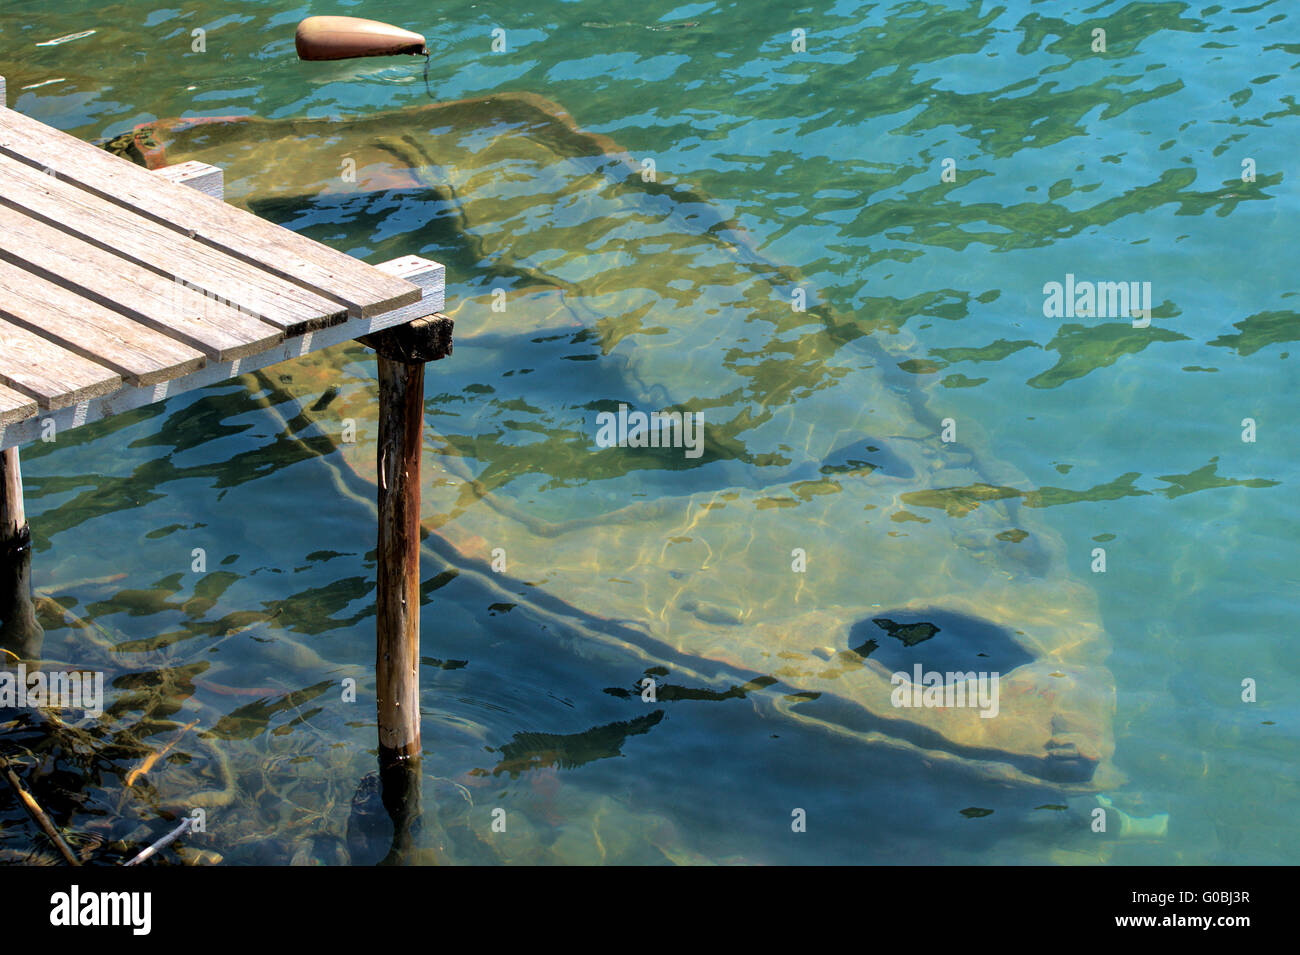 Old rowing boat sunken under water at a wooden jet - Stock Image